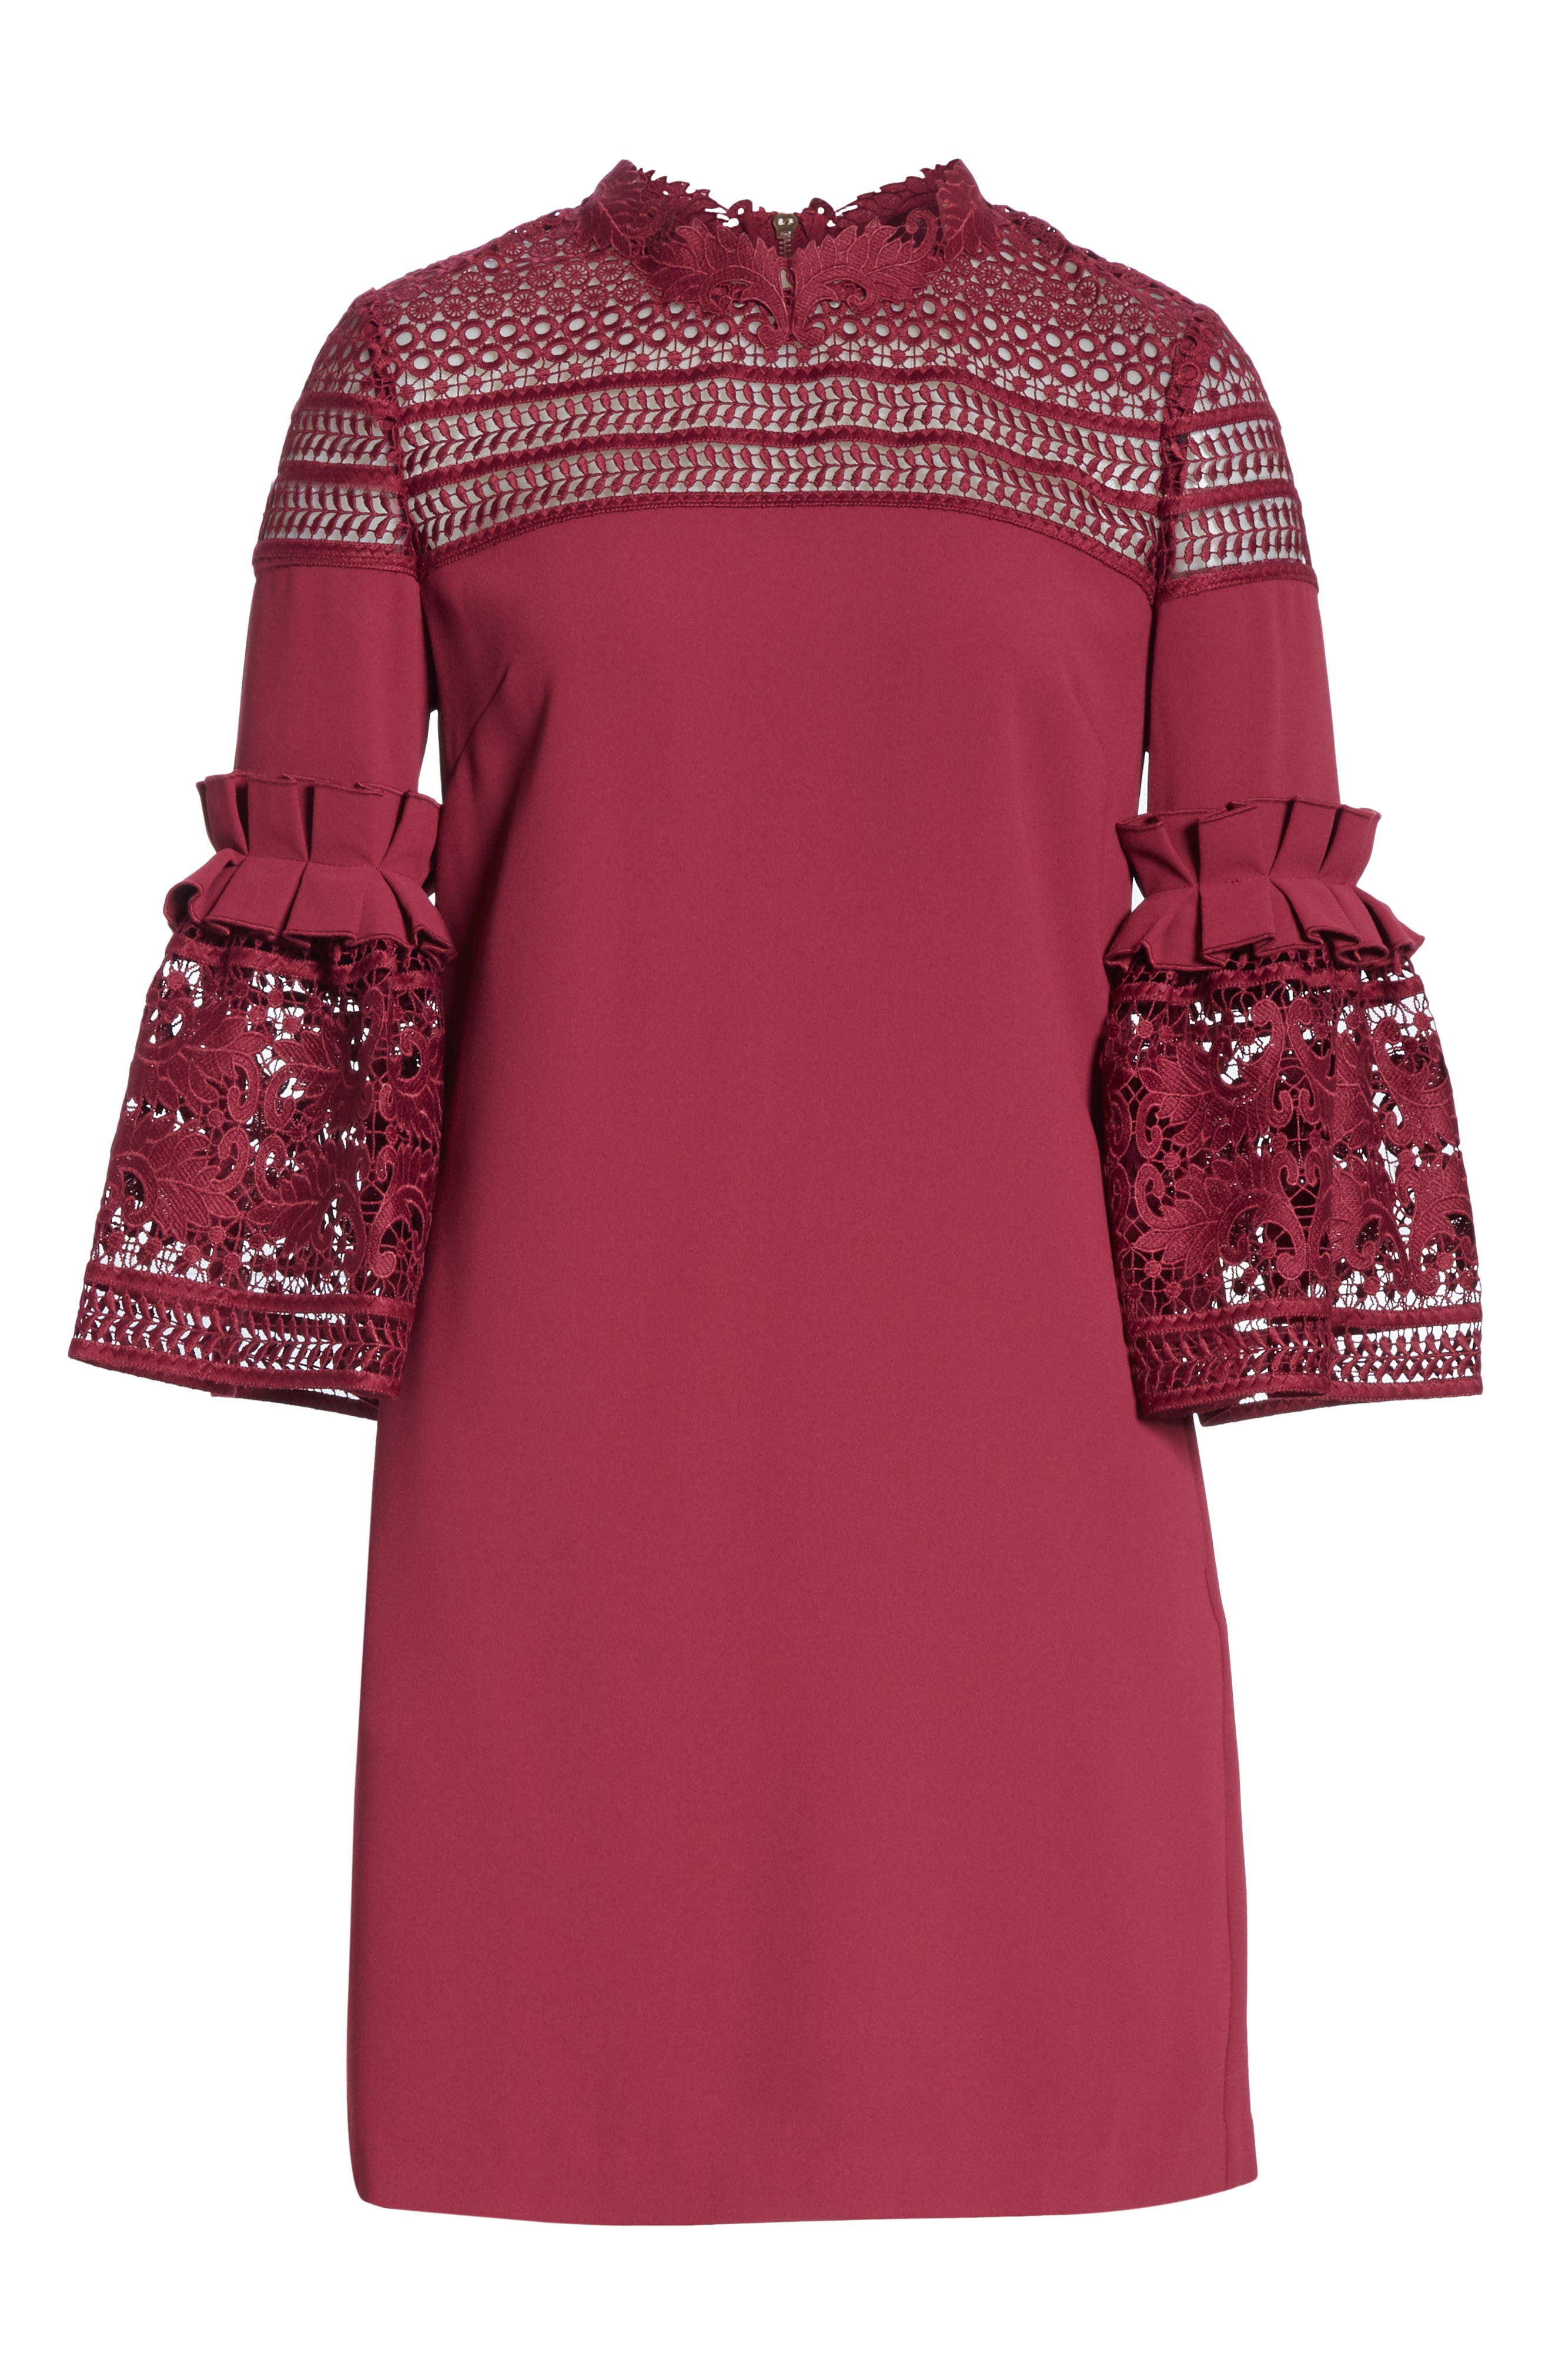 Lace Panel Bell Sleeve Tunic Dress,                             Alternate thumbnail 6, color,                             MAROON